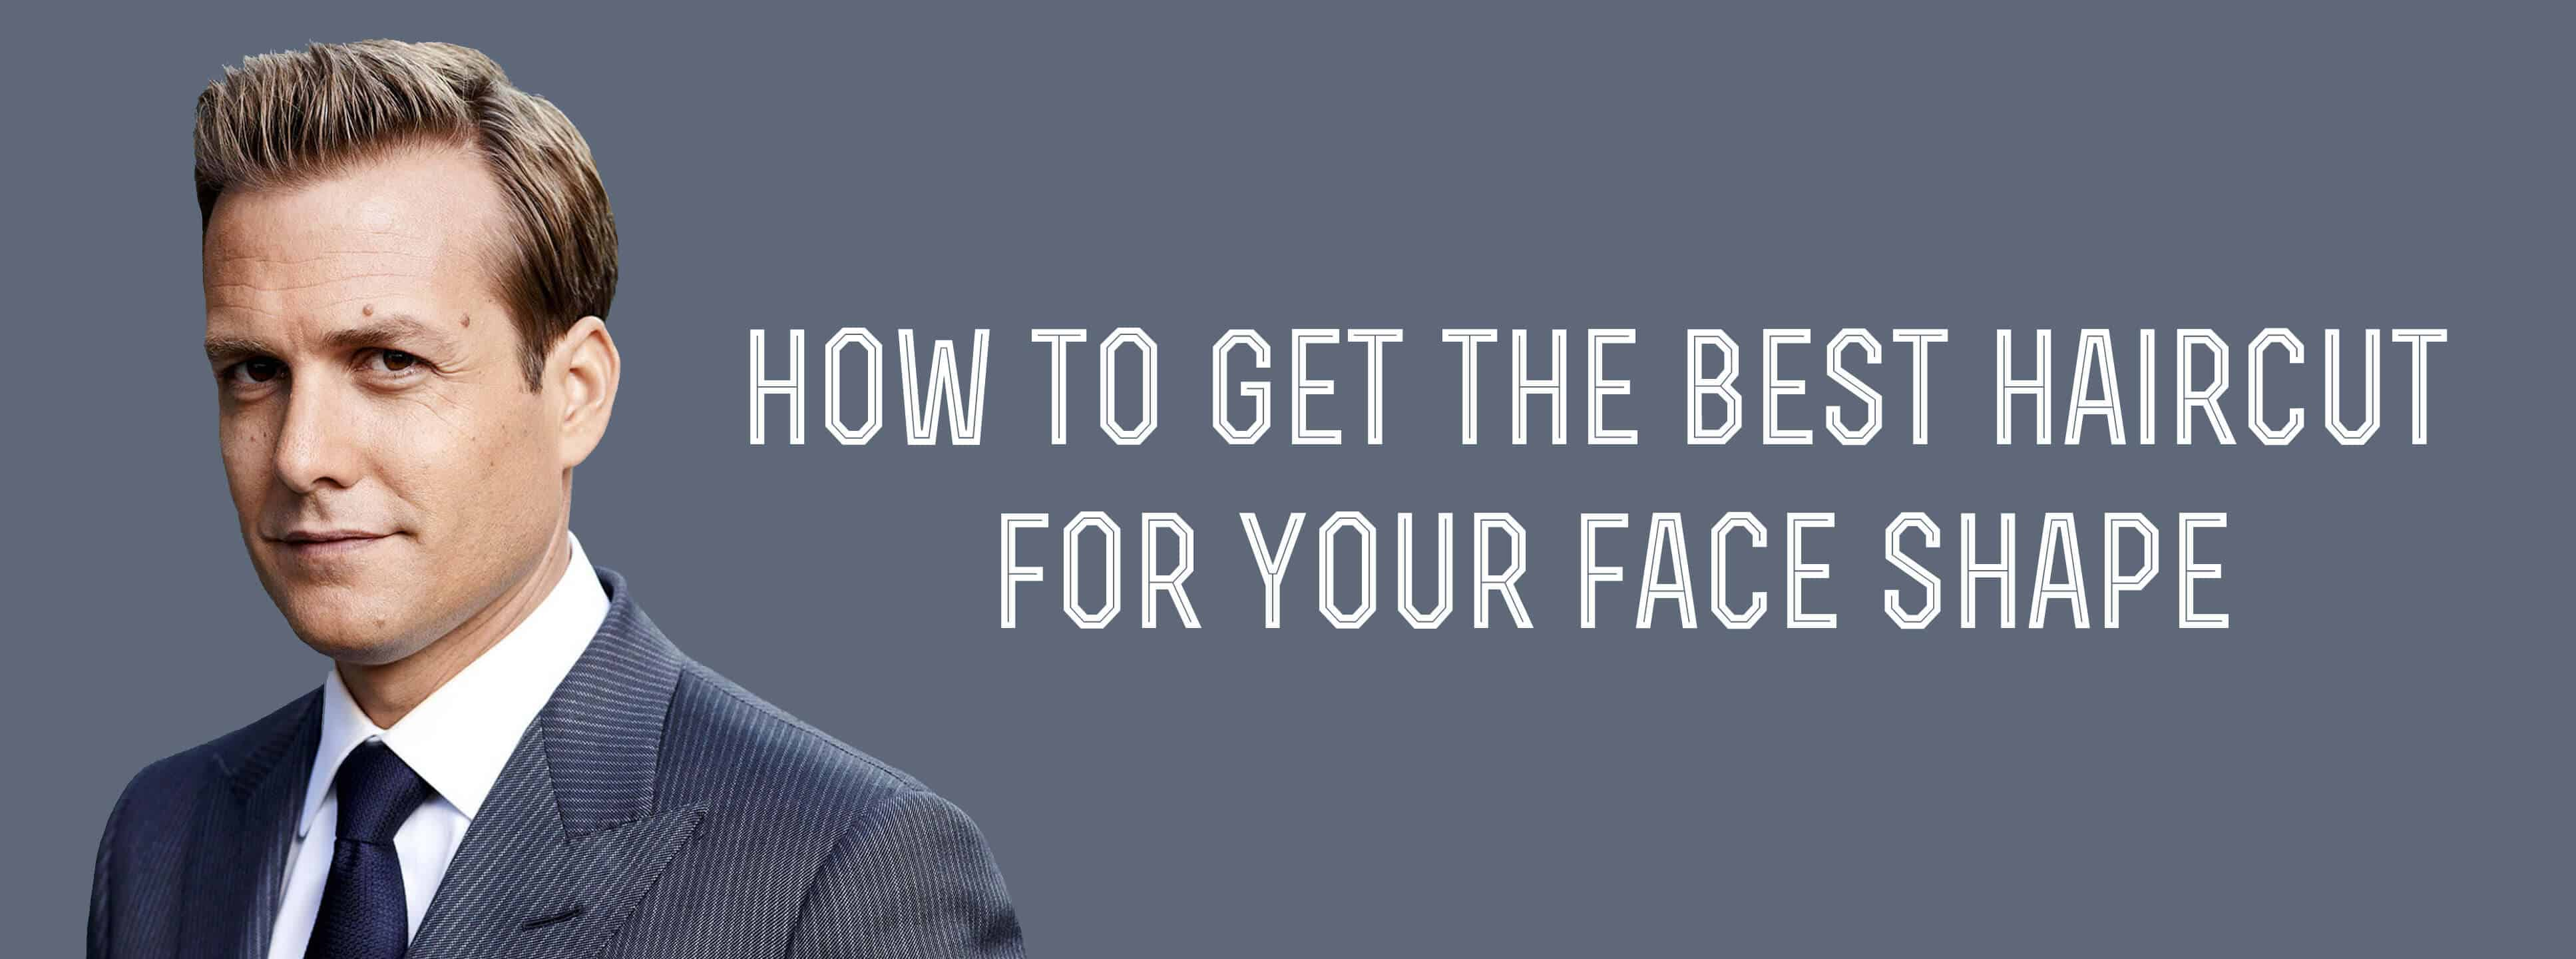 how to get the best haircut for your face shape — gentleman's gazette